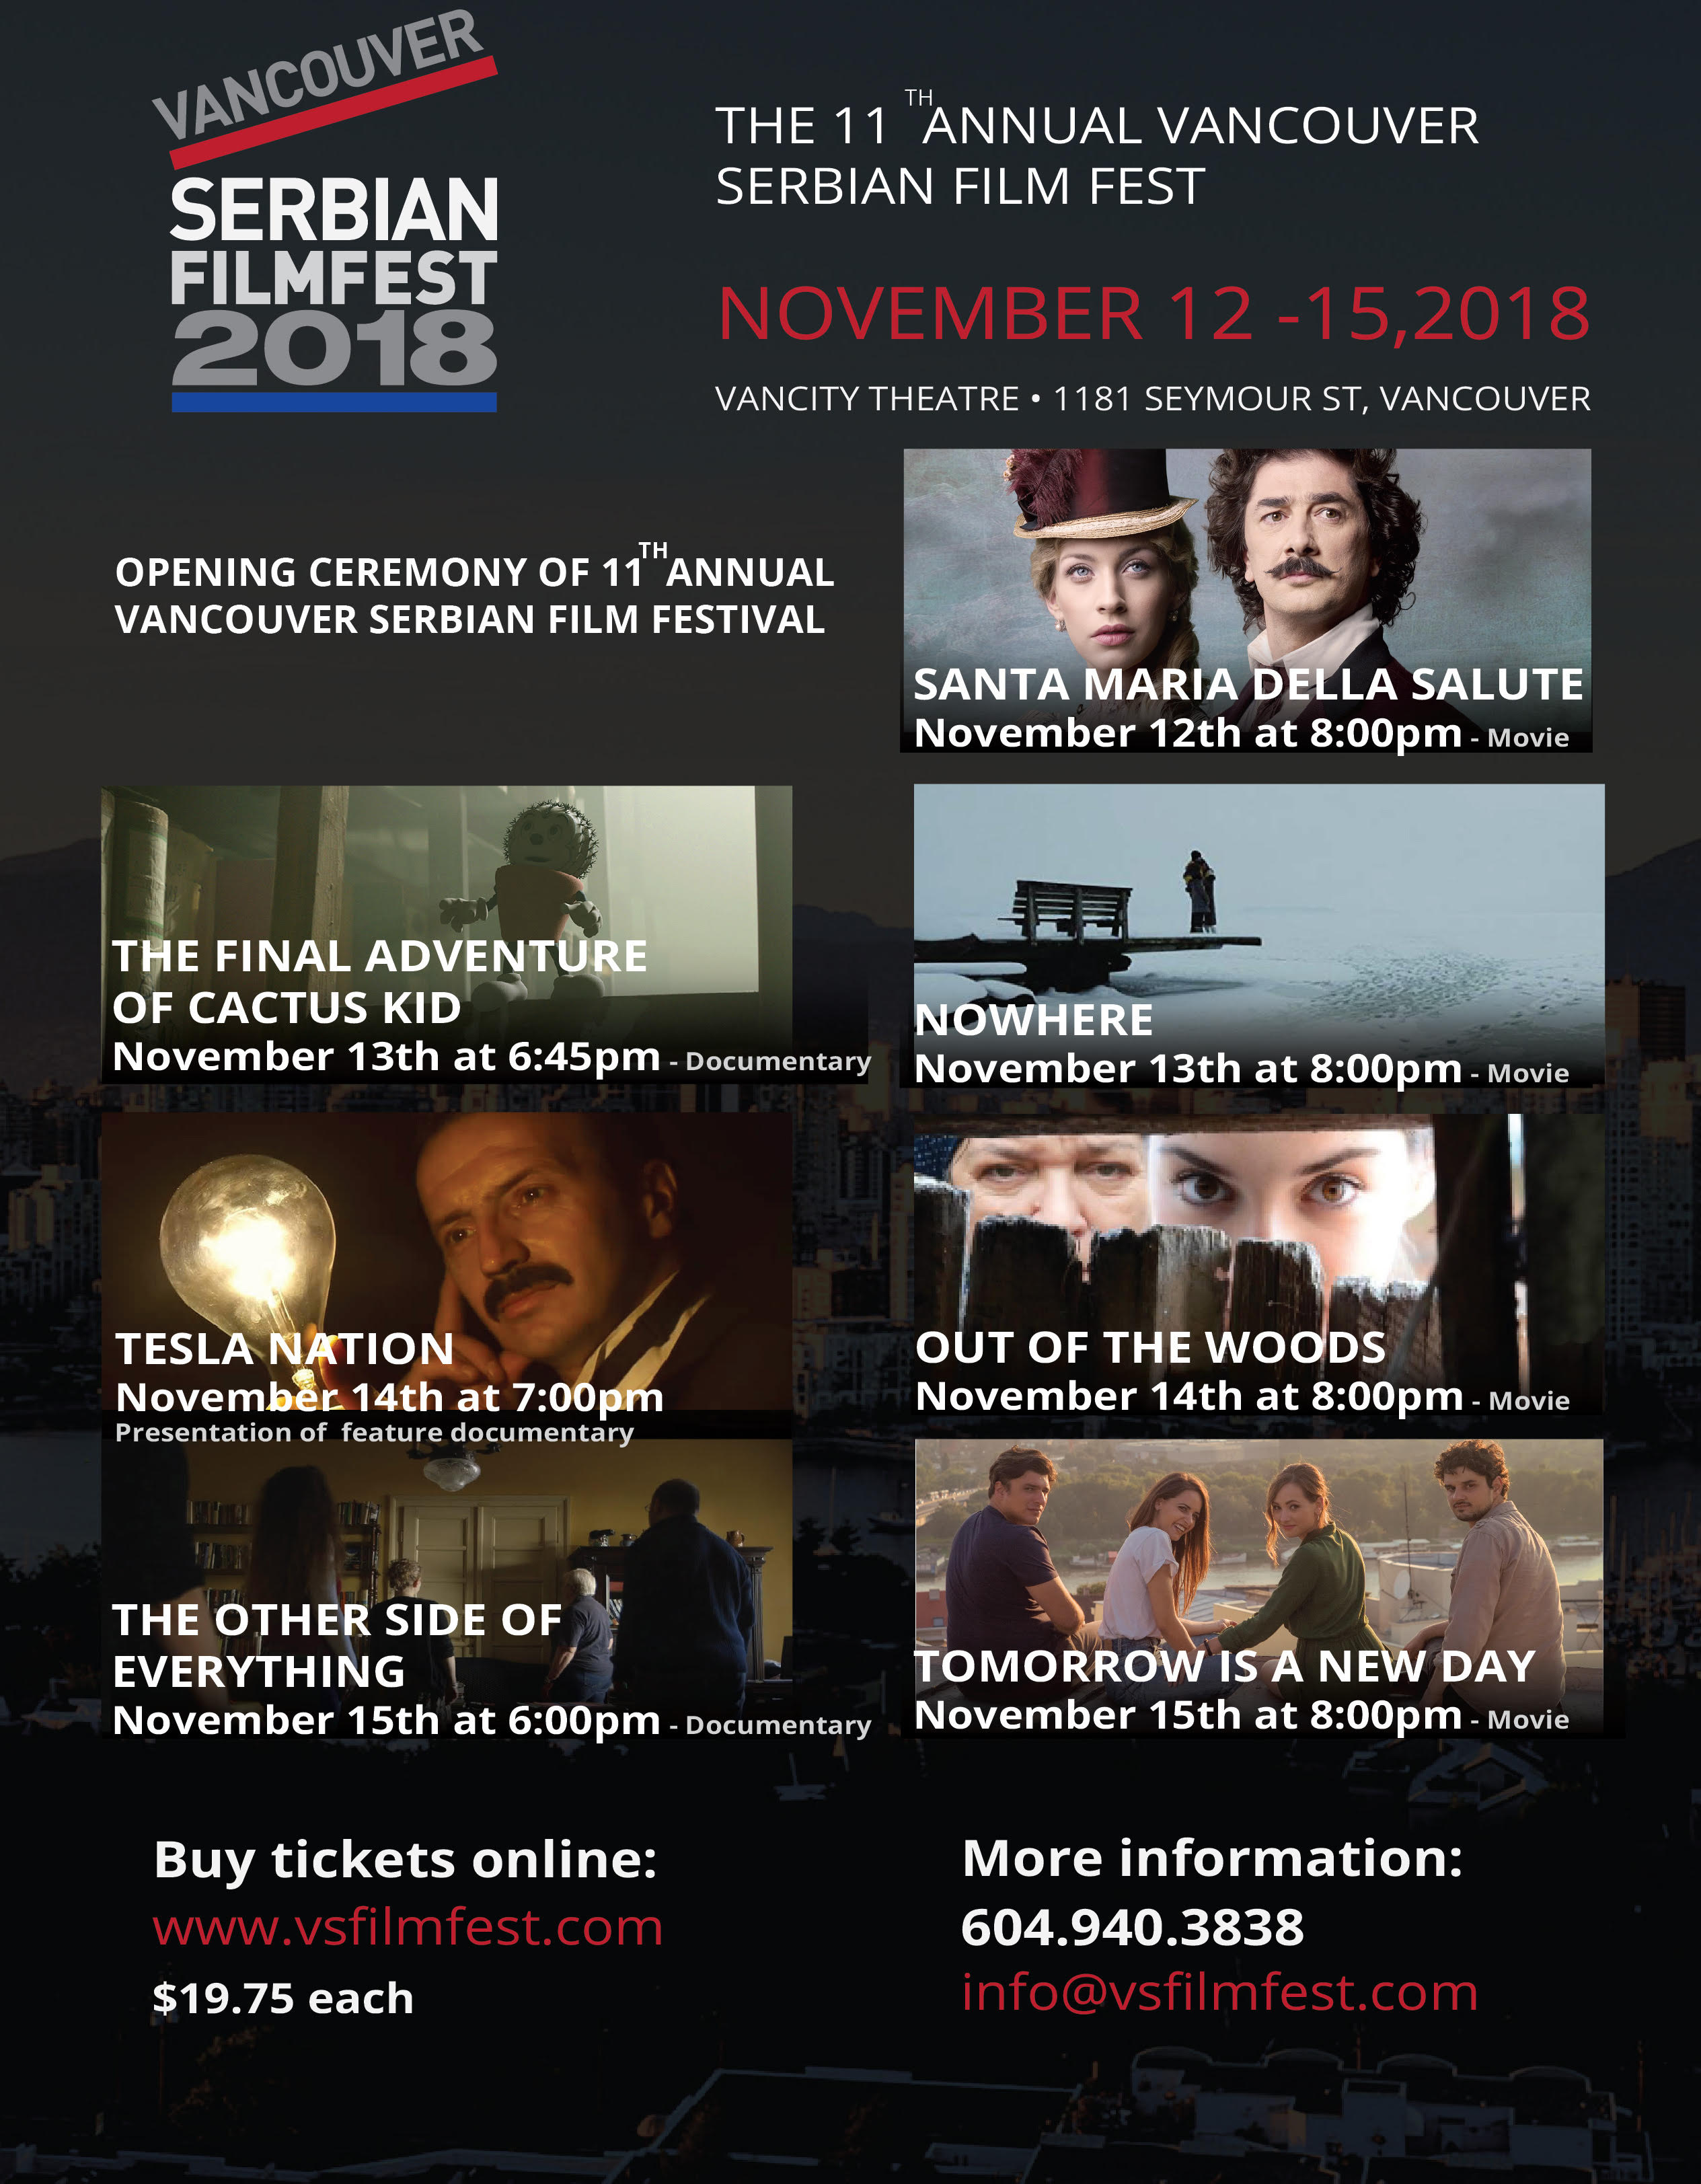 The 11th Annual Vancouver Serbian FilmFest NOVEMBER 12-15, 2018